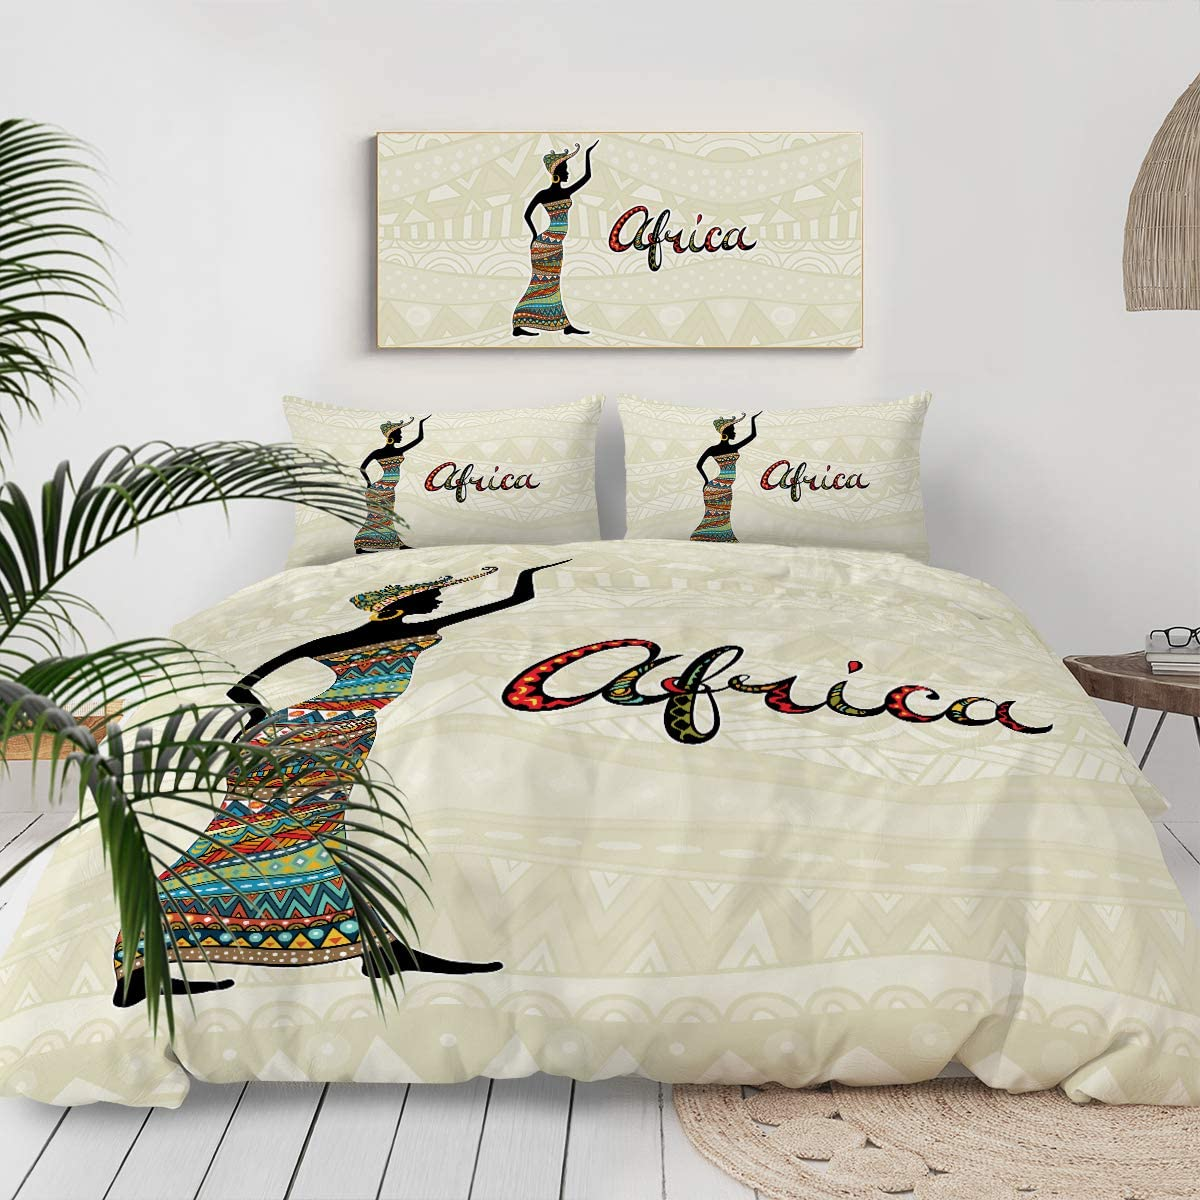 Sleepwish South Africa Bedding Colorful Tribal Ethnic African Women Print Duvet Cover and Pillowcases 3 Piece East Urban Home Comforter Cover Sets (Queen)